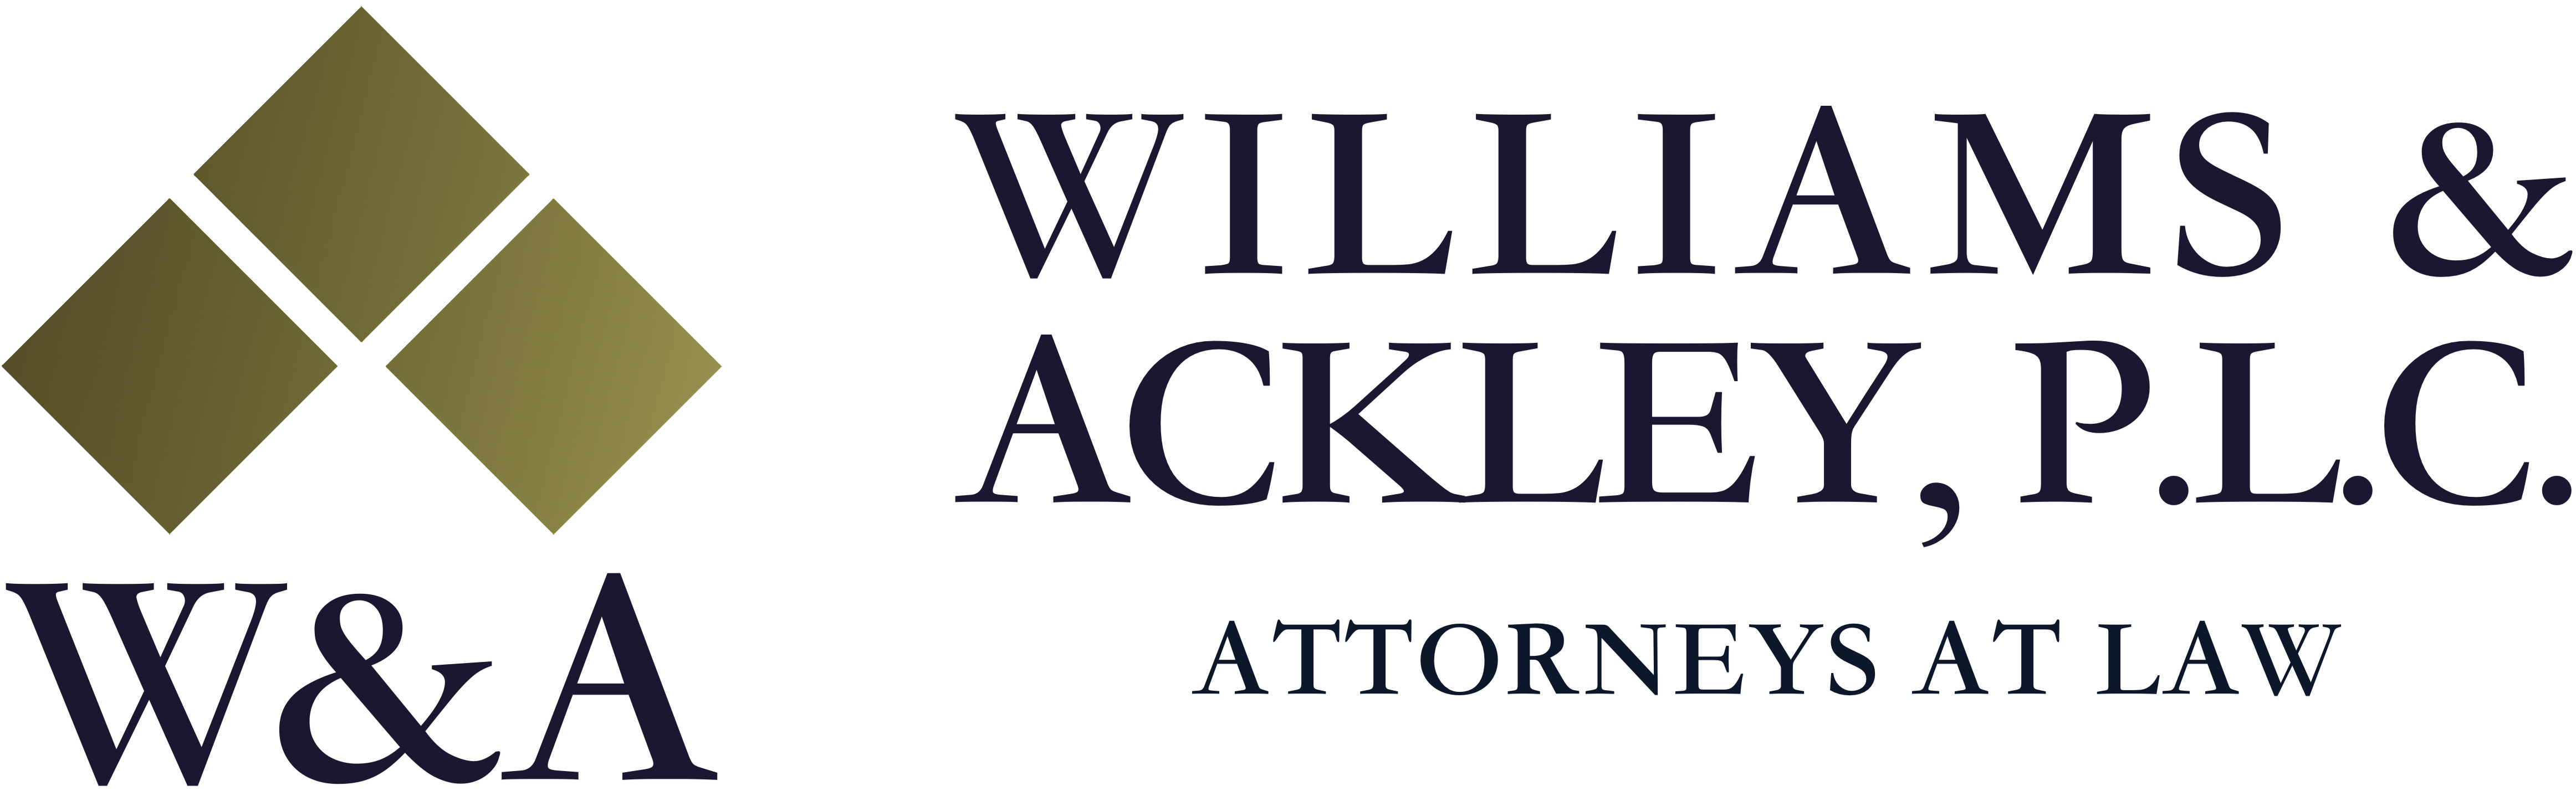 Williams & Ackley, P.L.C.